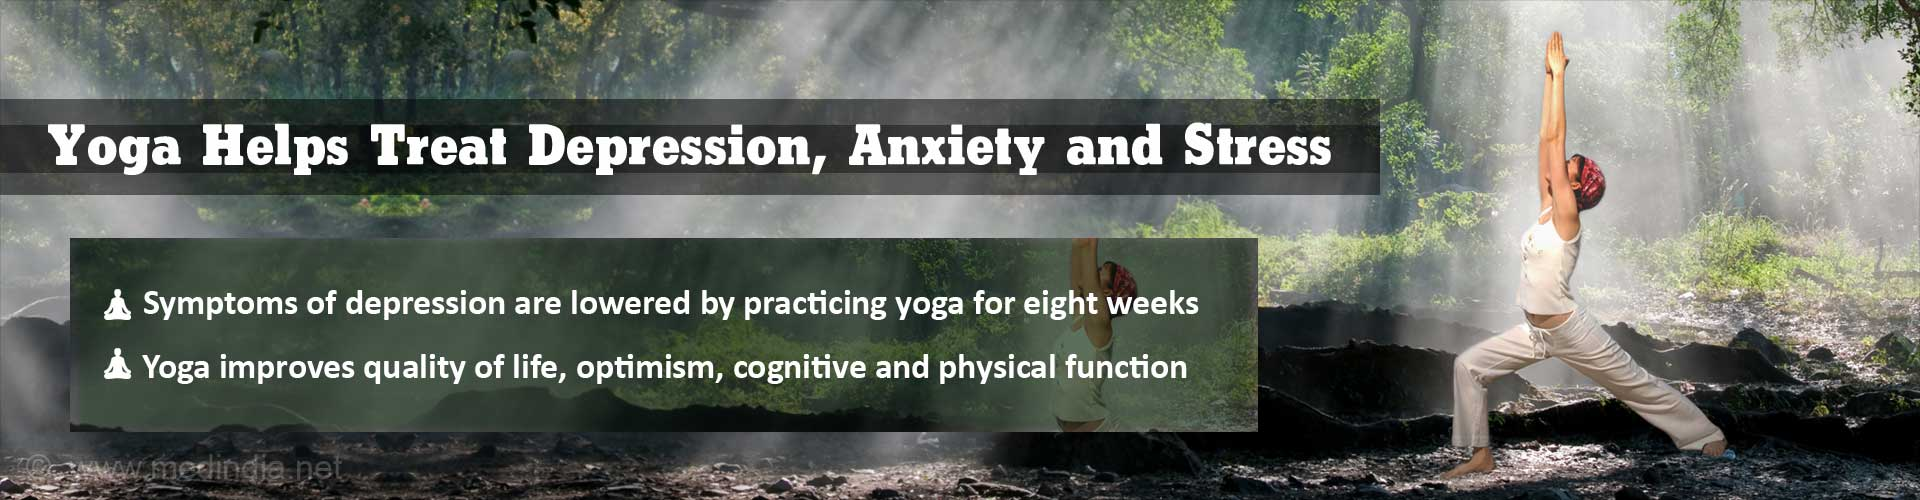 Can Yoga Help Lower Symptoms of Depression?